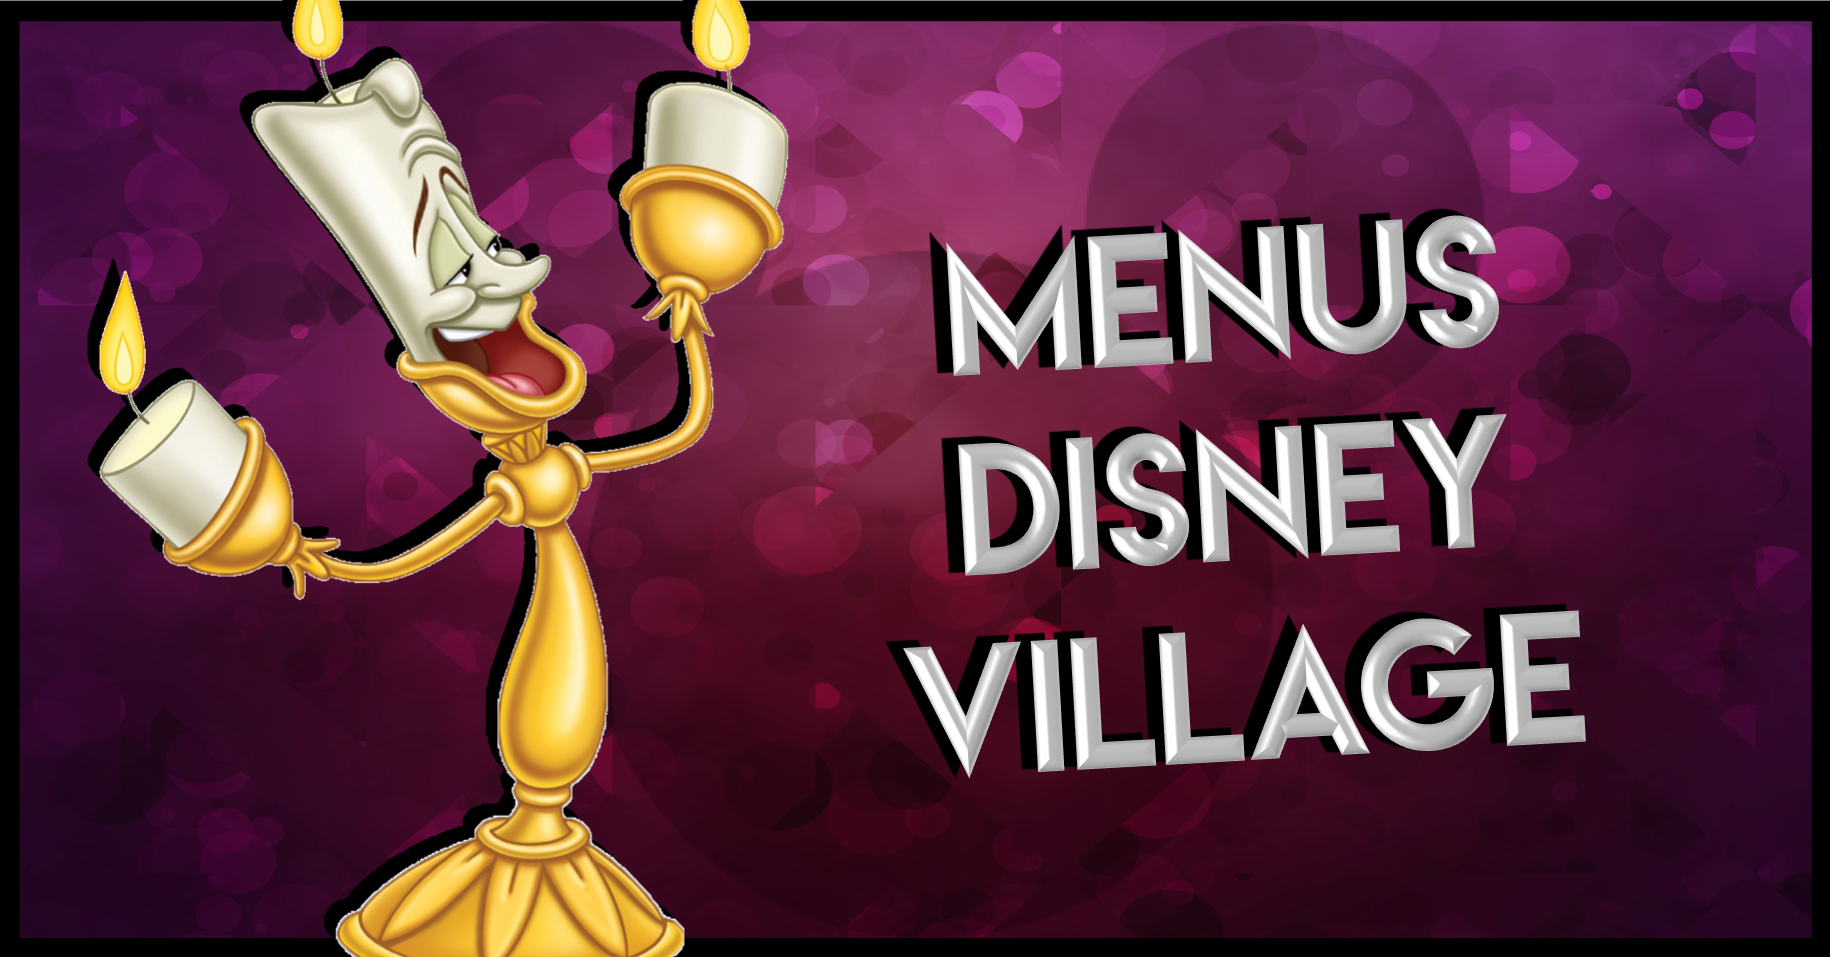 MENUSDISNEYVILLAGE.png